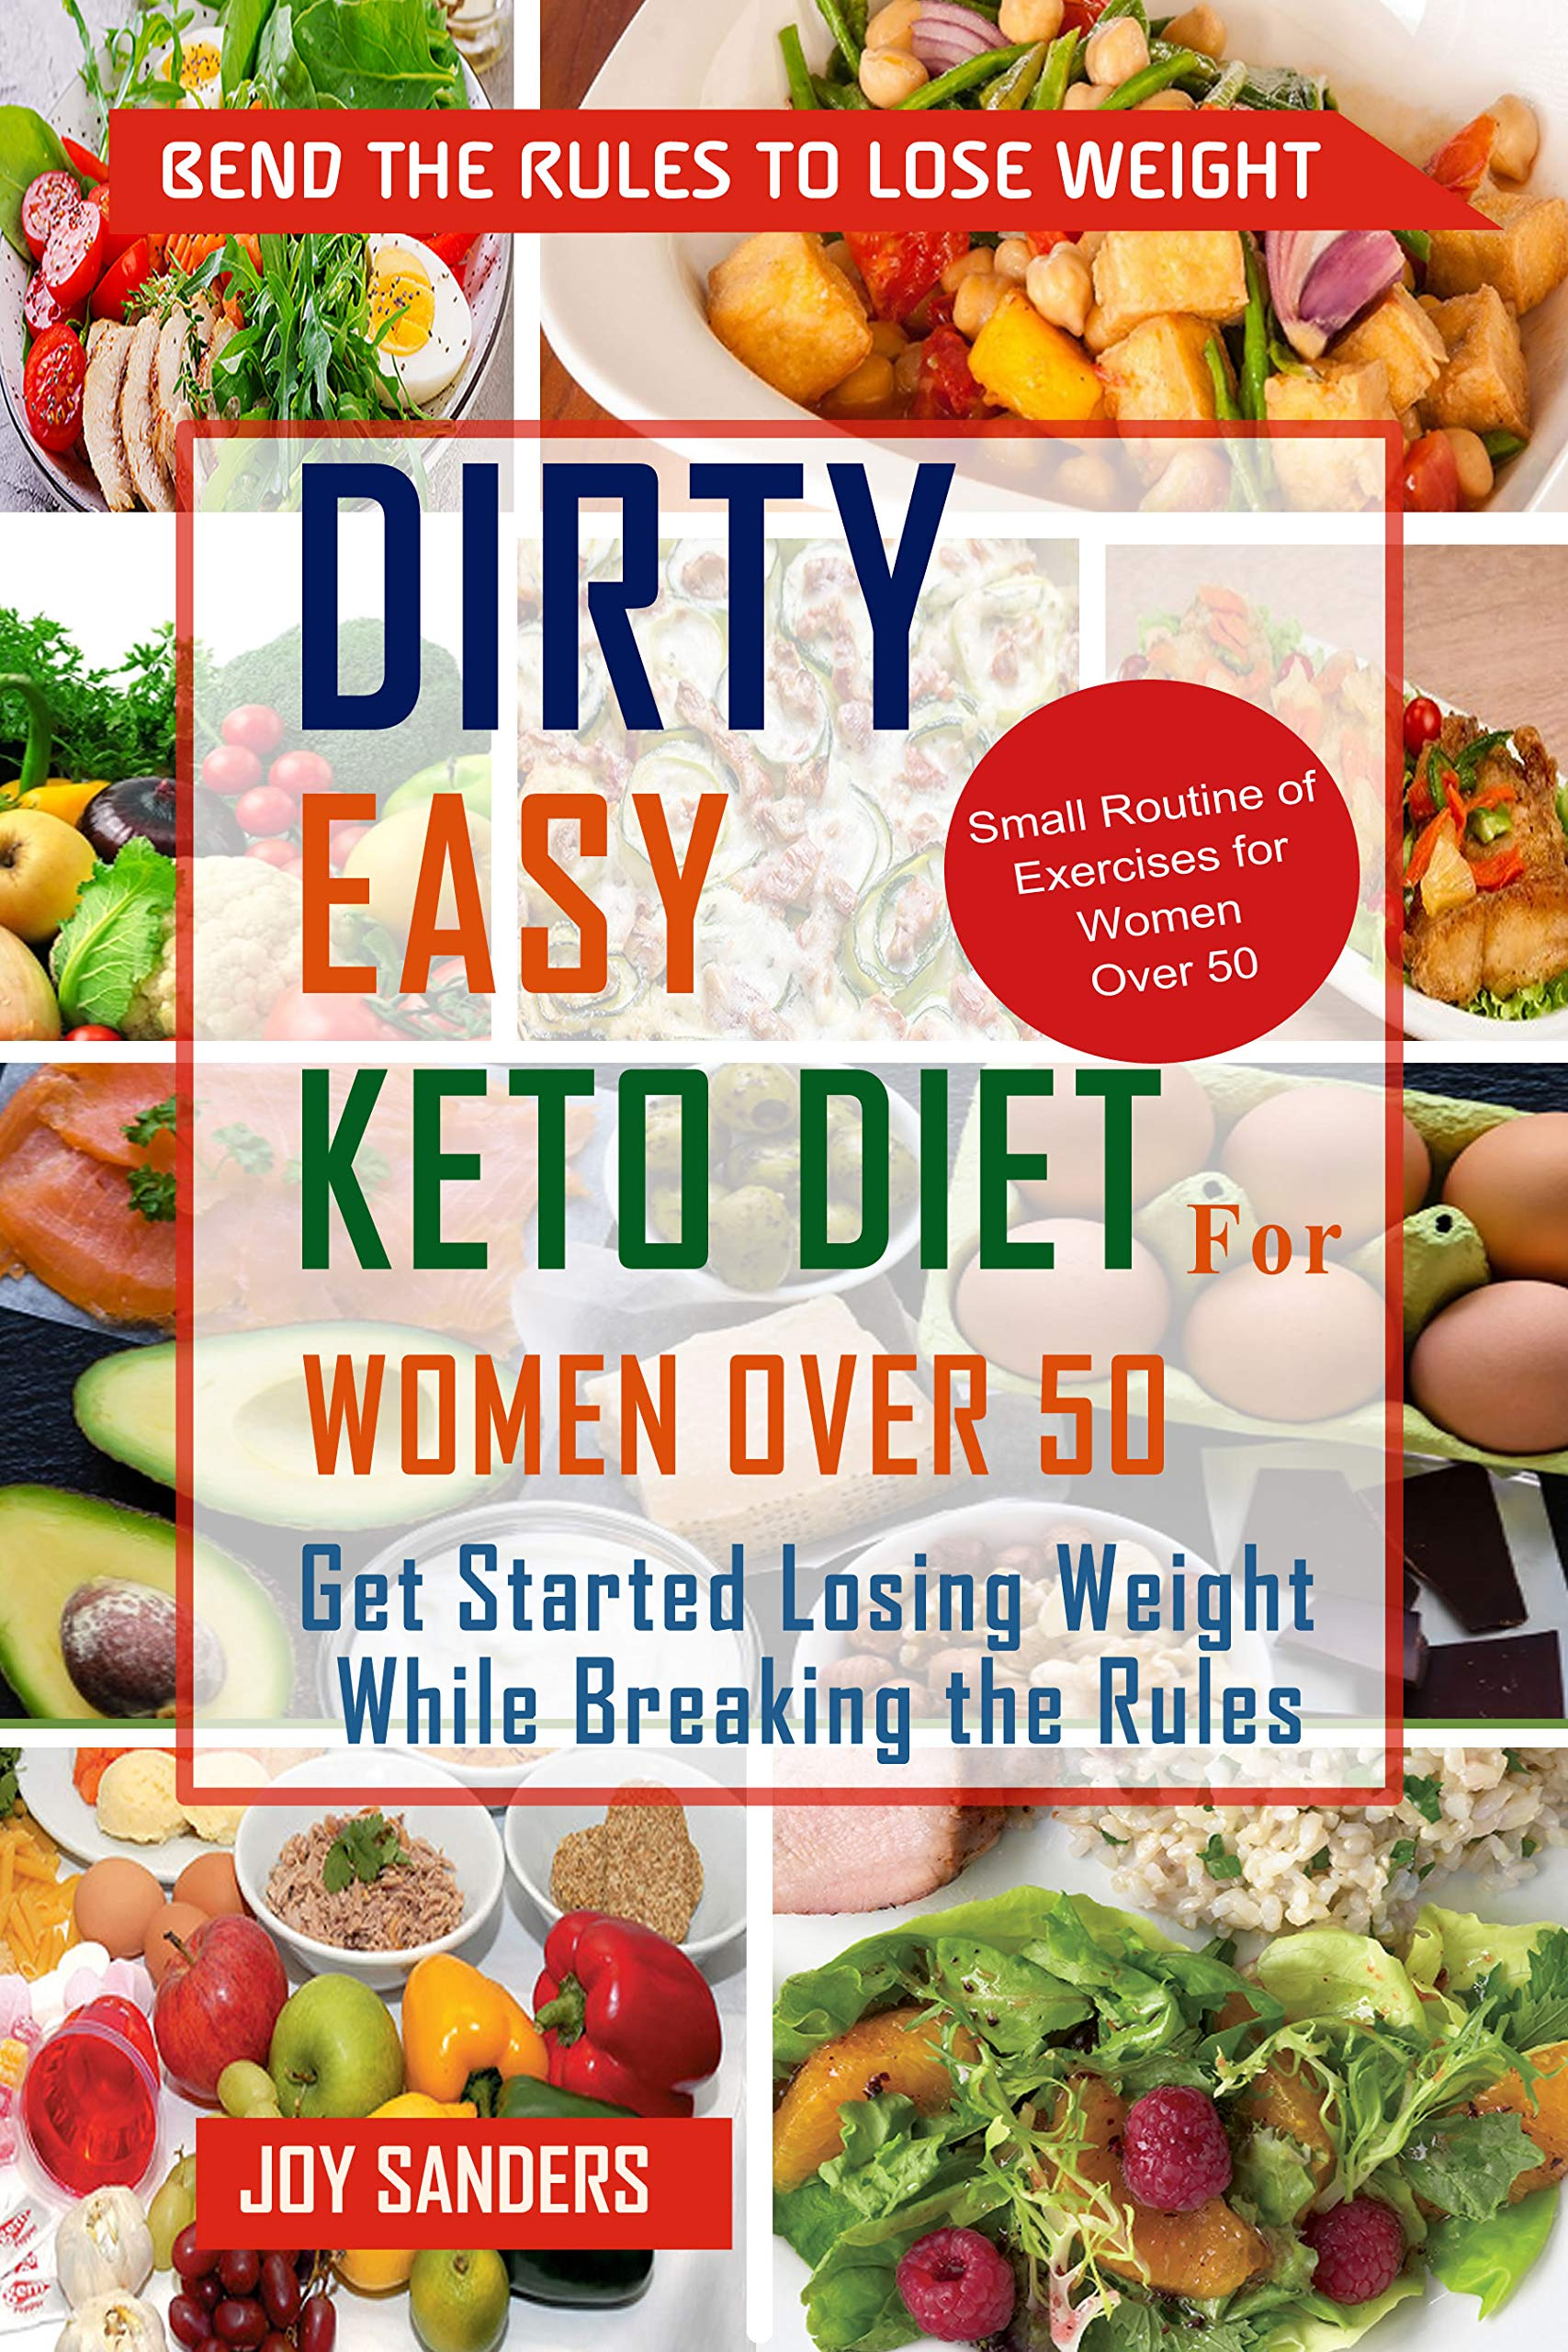 Dirty, Easy, Keto for Women Over 50: Get Started Losing Weight While Breaking the Rules